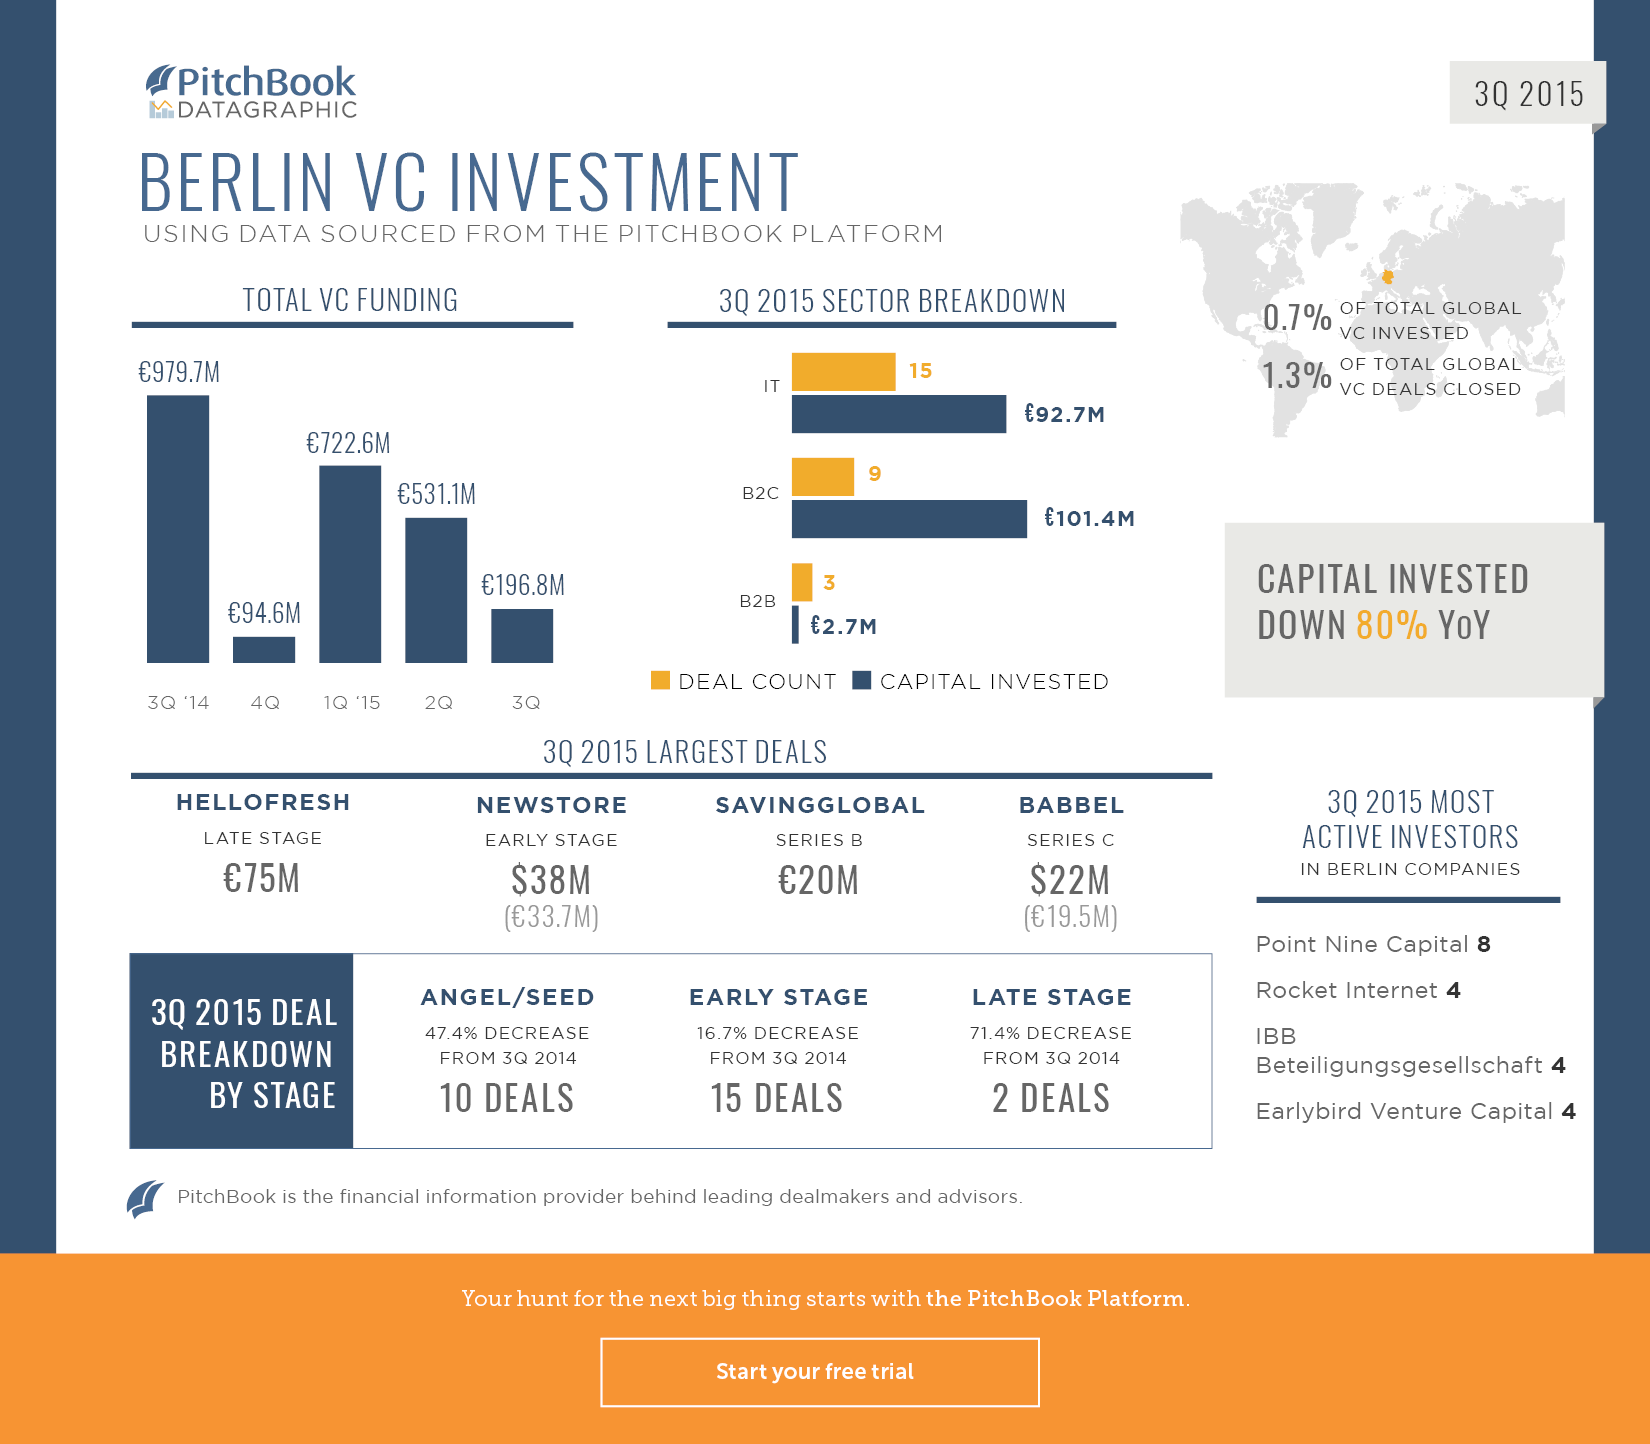 3Q 2015 Berlin Datagraphic